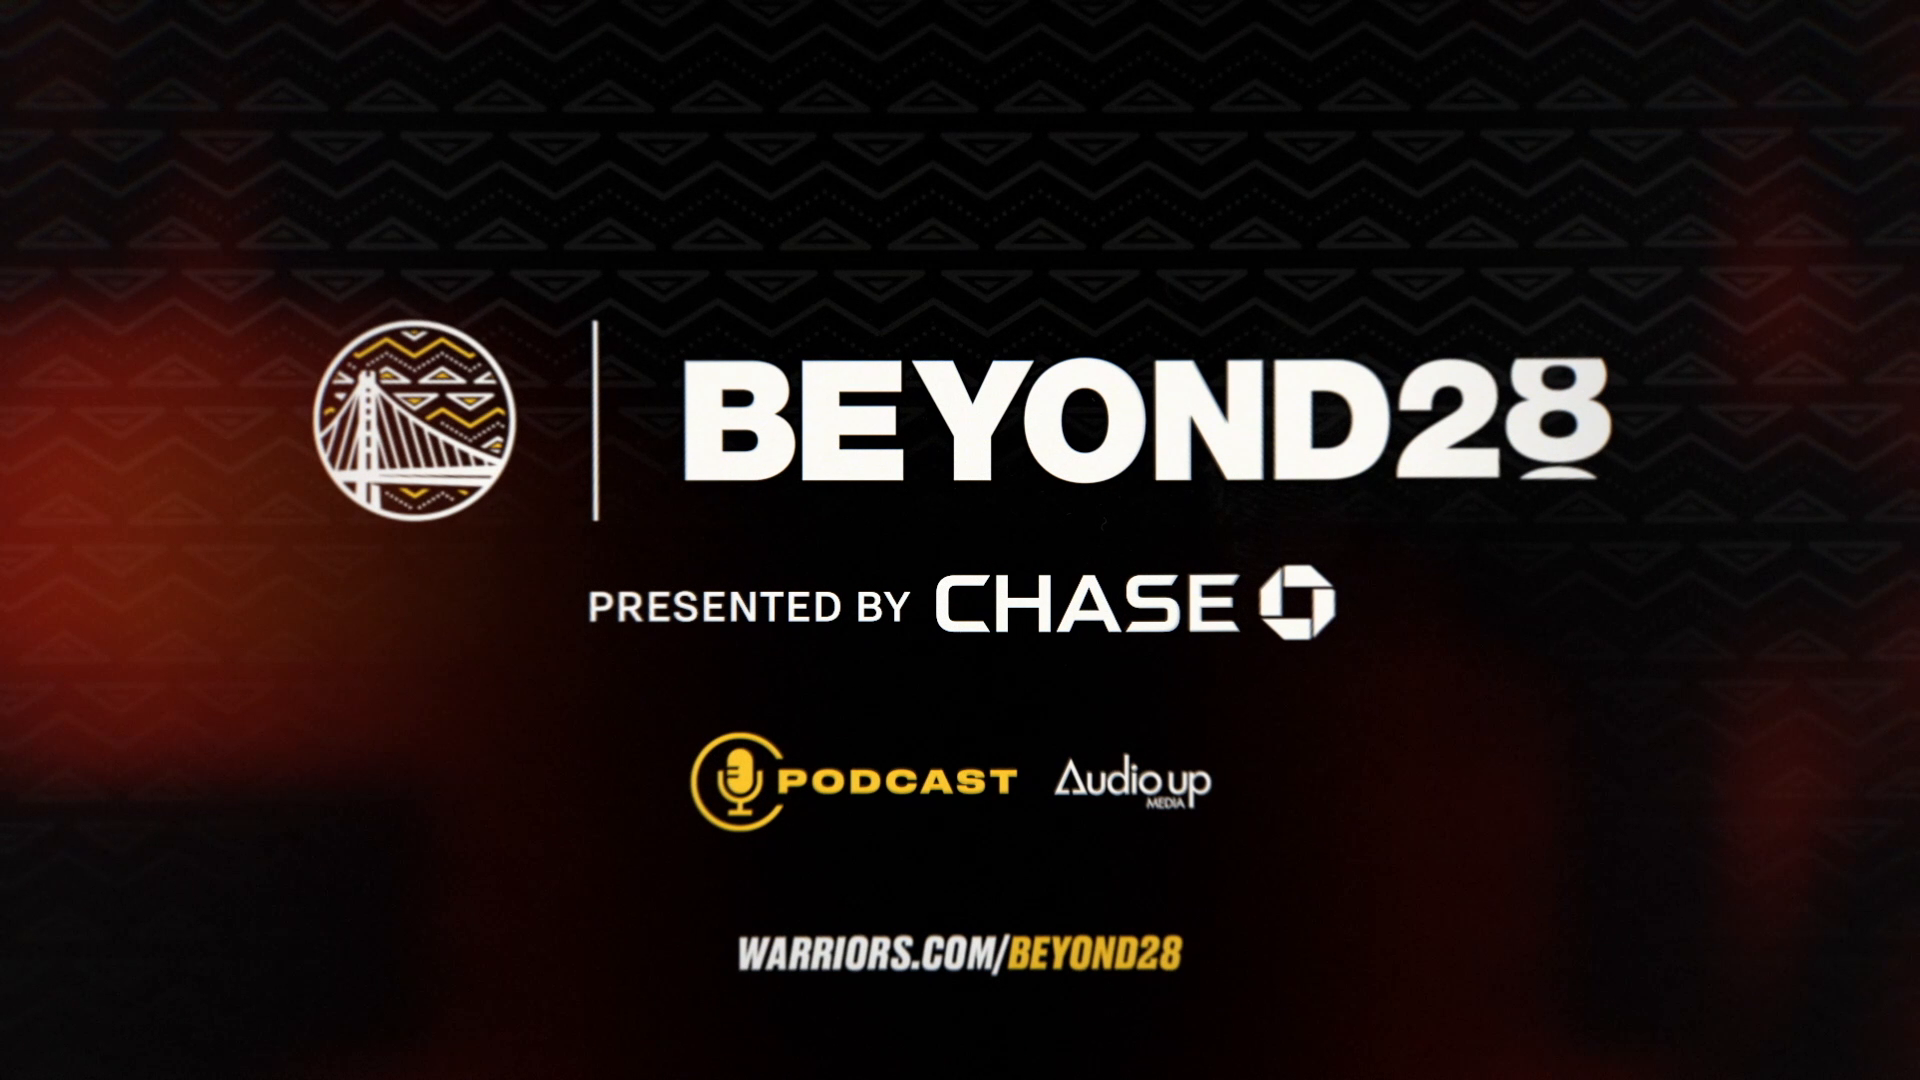 Beyond28 Podcast, Presented by Chase